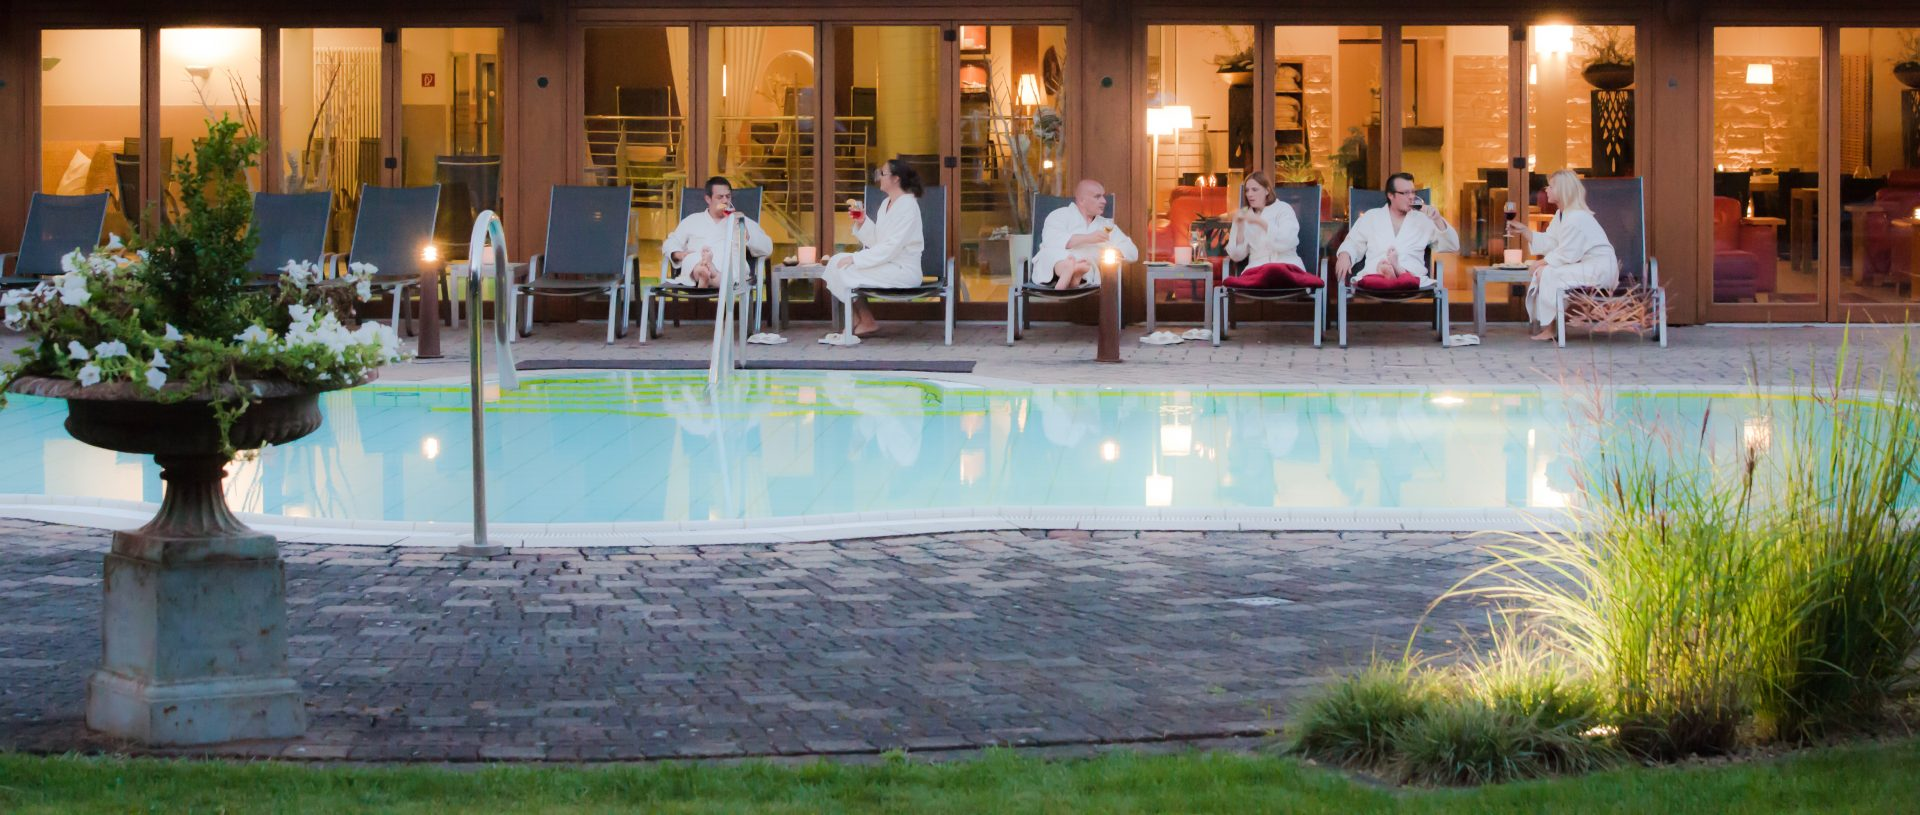 Bahia Zwembad Bocholt Wellness Duitsland Mooie Spa S Net Over De Grens Duitsland Campings